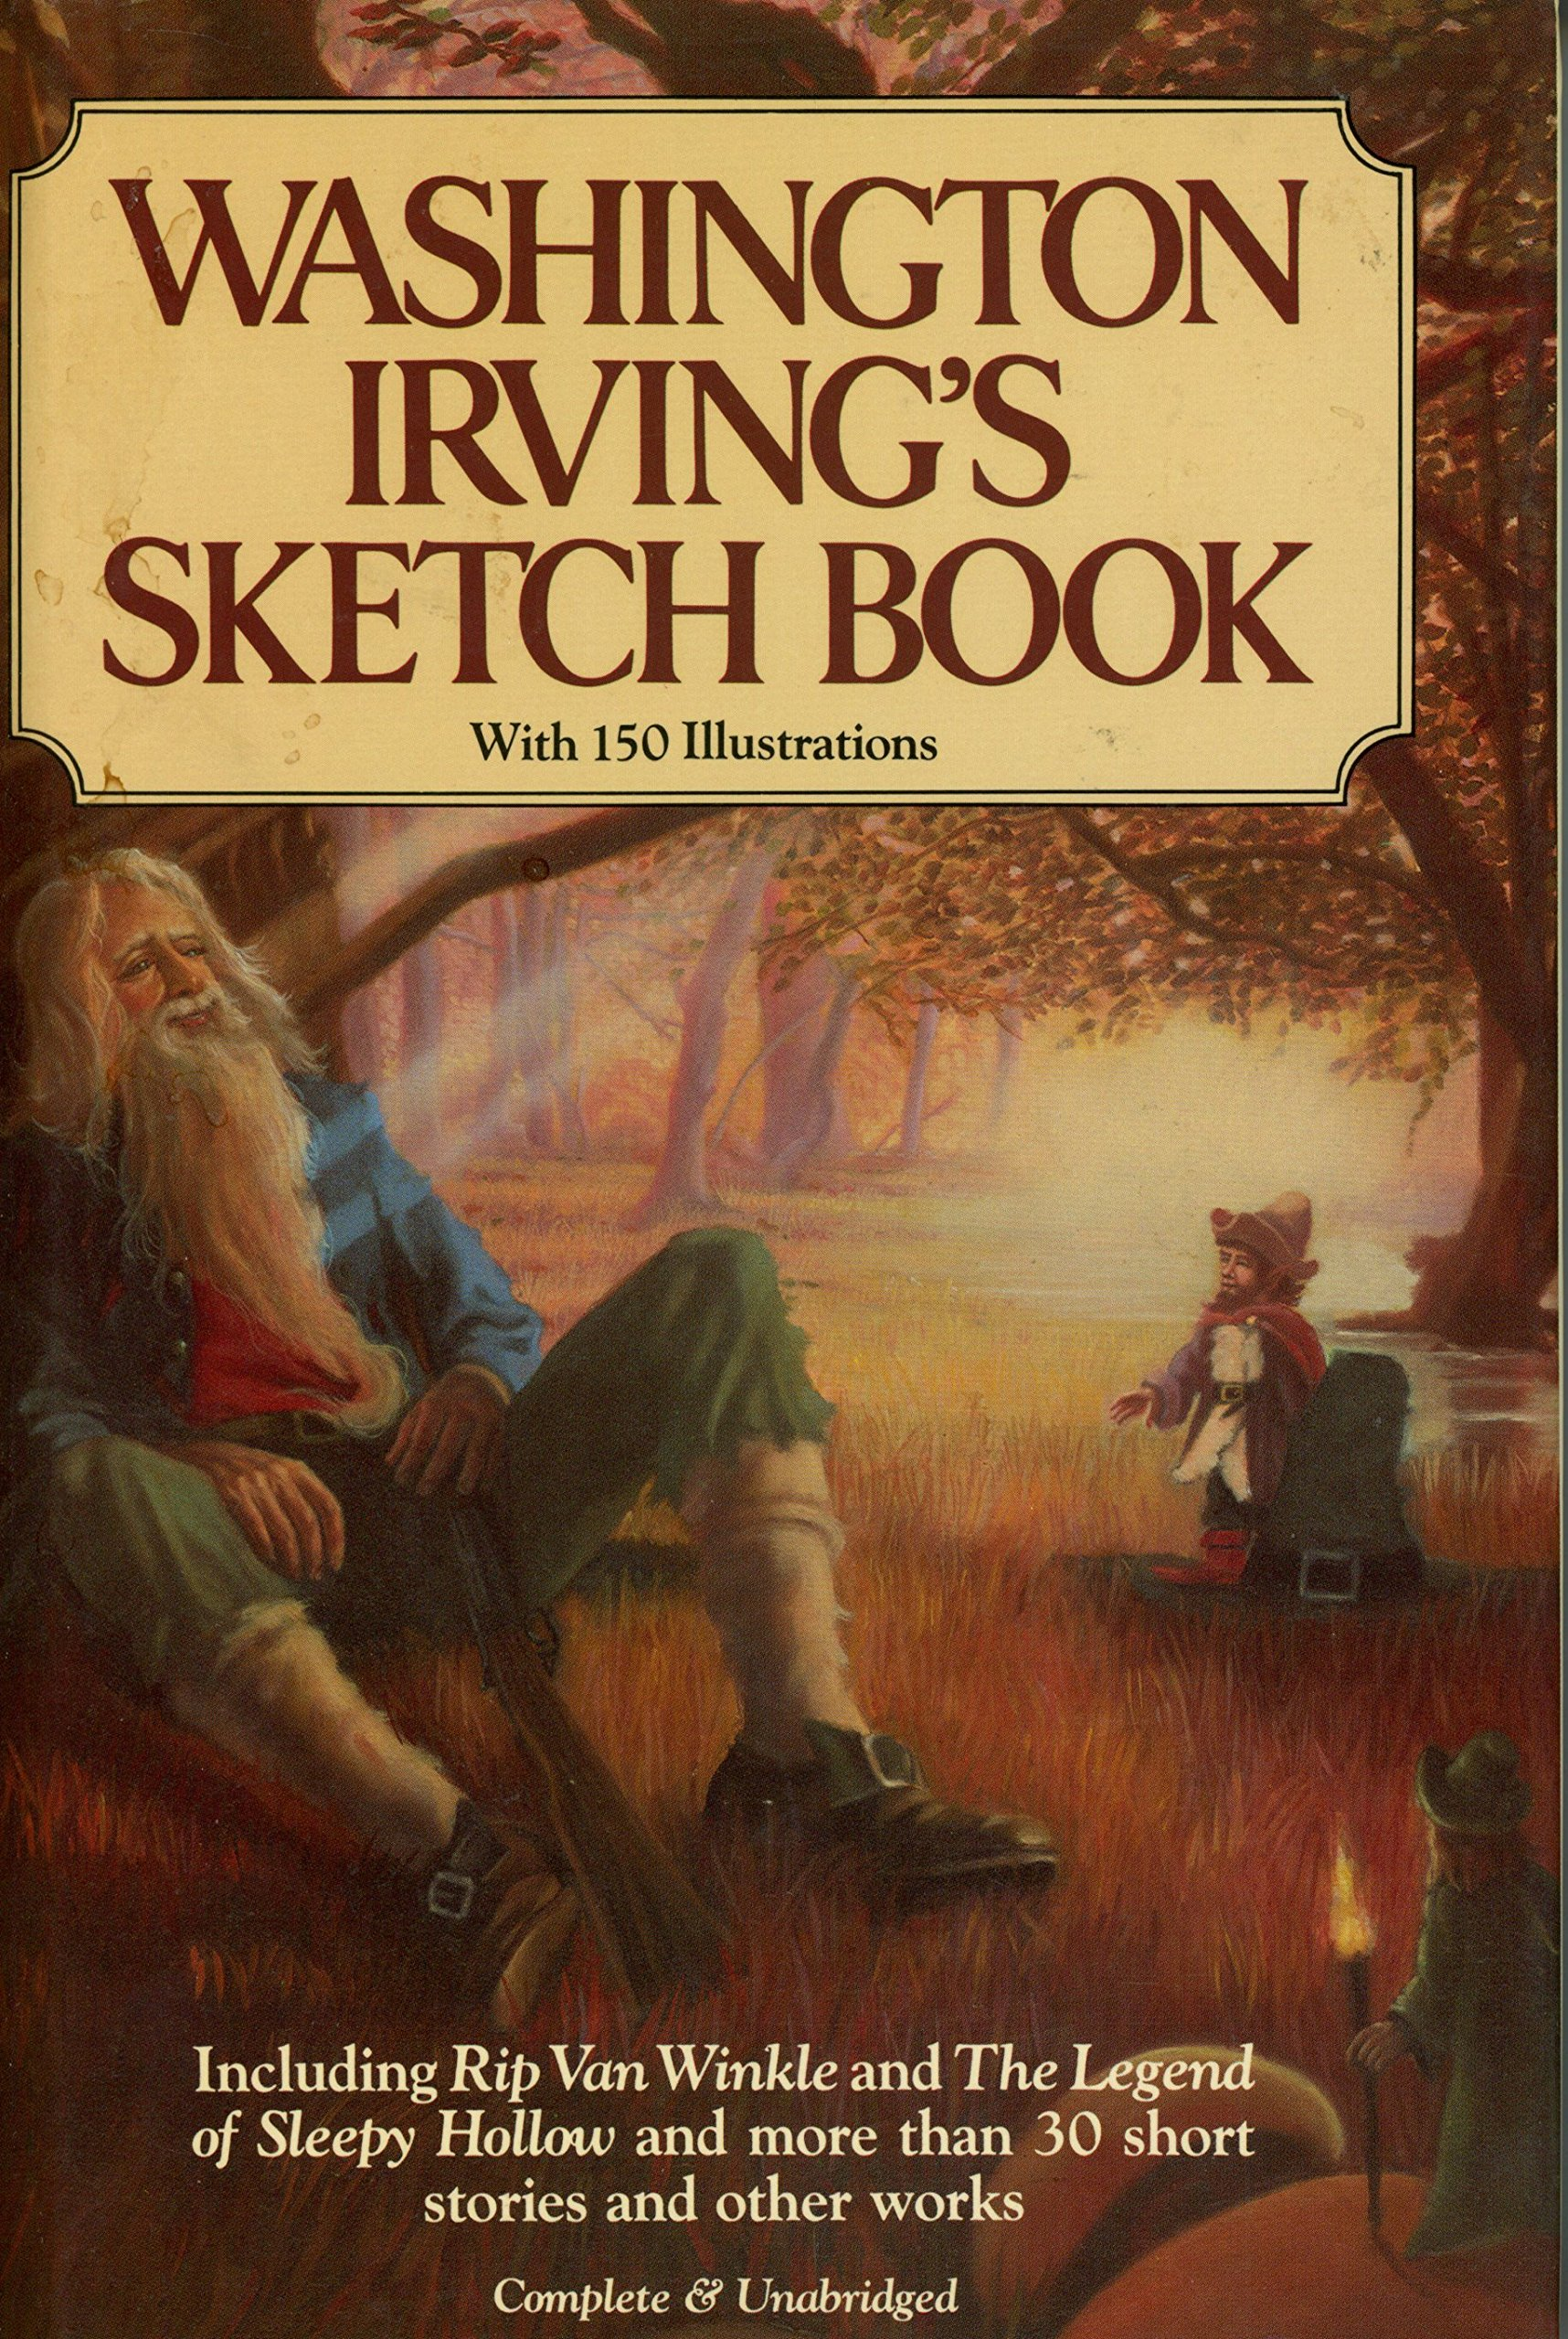 Amazon com washington irvings sketch book 9780517457528 washington irving philip mcfarland books